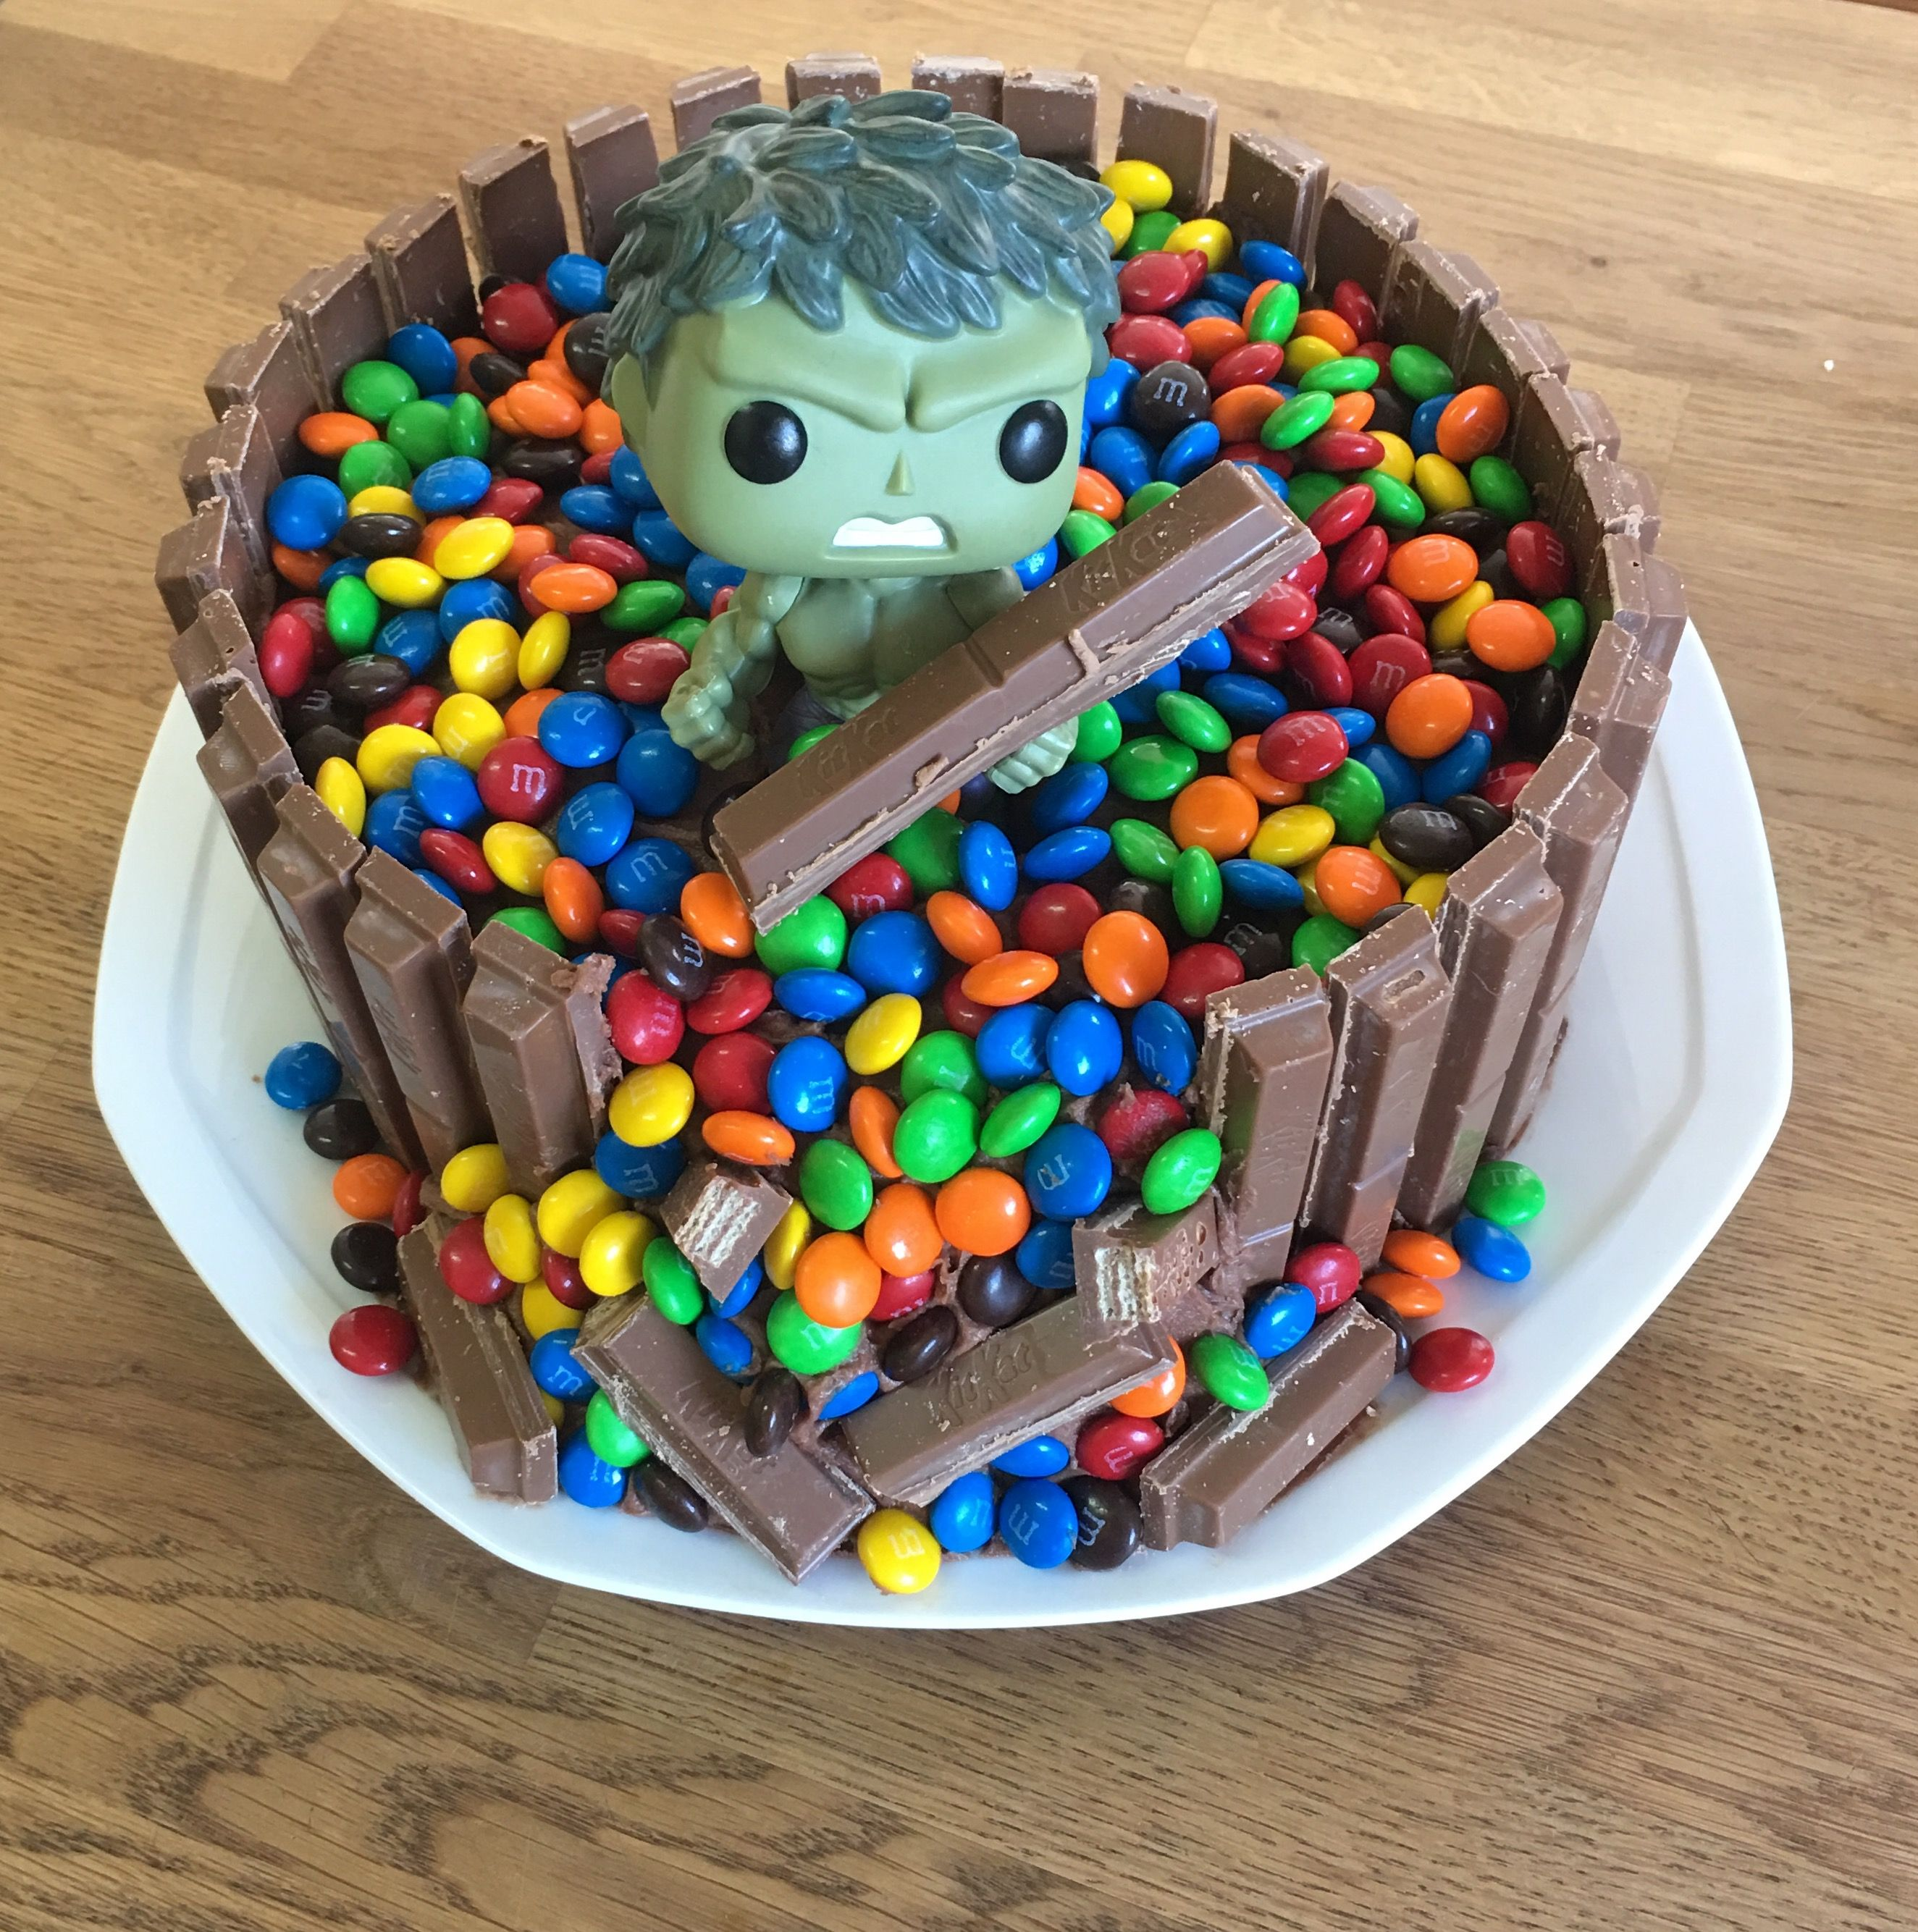 Our Version Of A Hulk Birthday Cake For 9 Year Old Boy He Loved It